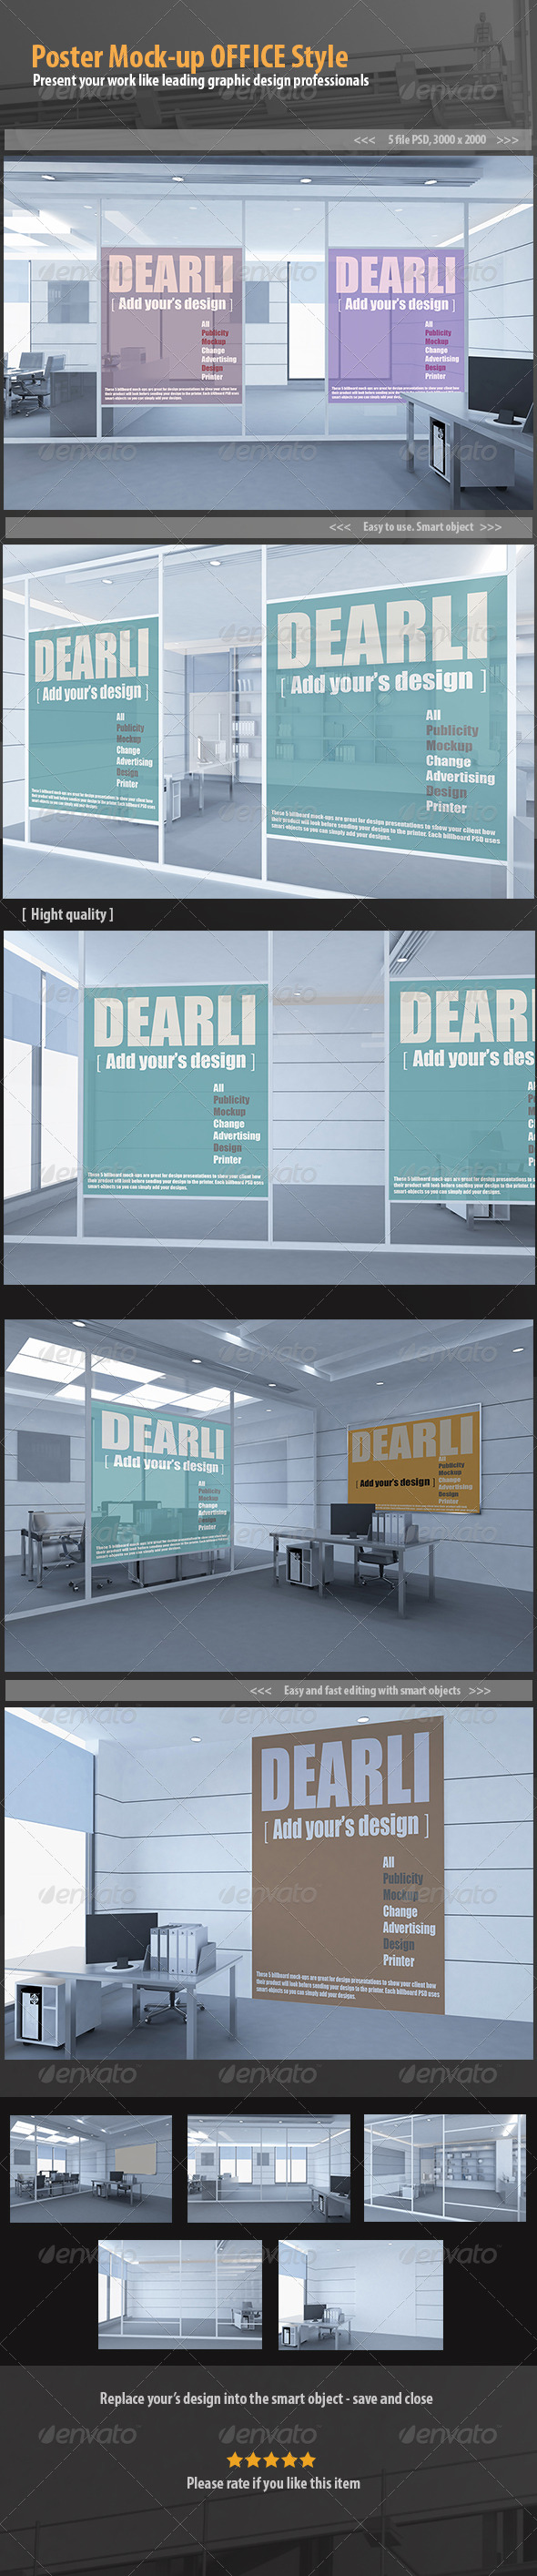 GraphicRiver Poster Mock-up OFFICE Style 6689459